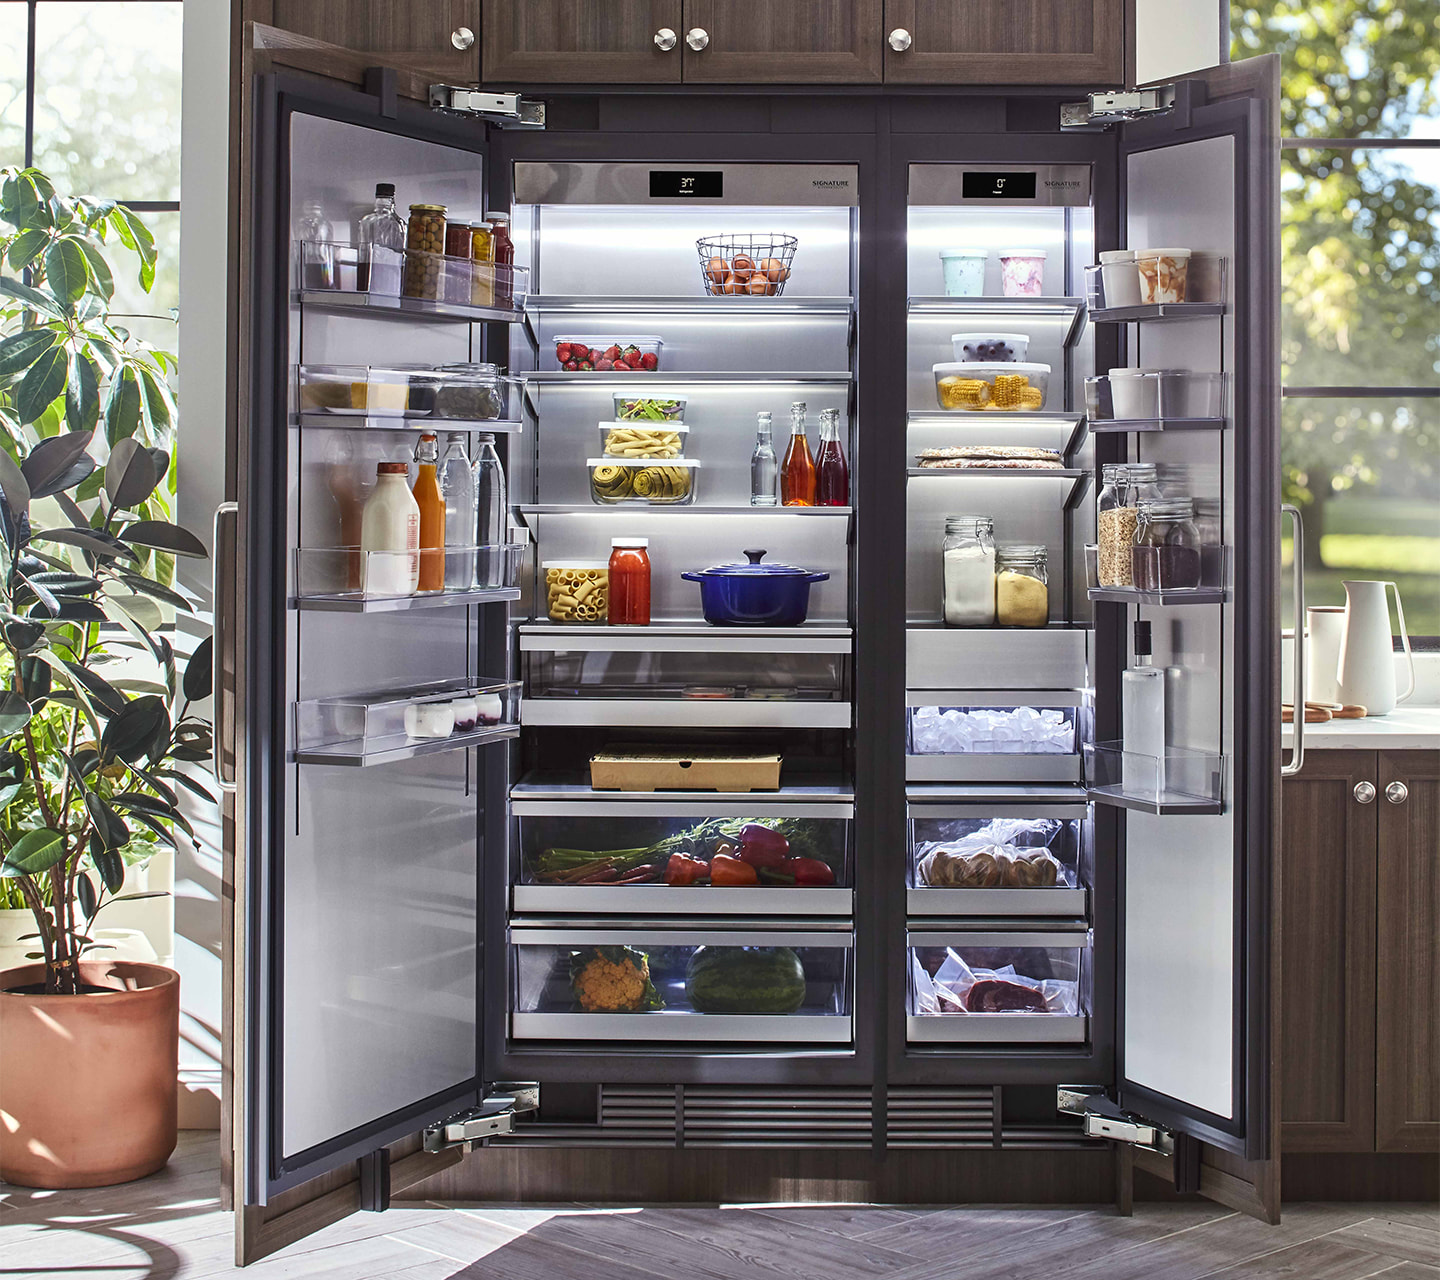 Built-in Refrigerator & Freezer Columns | Signature Kitchen Suite